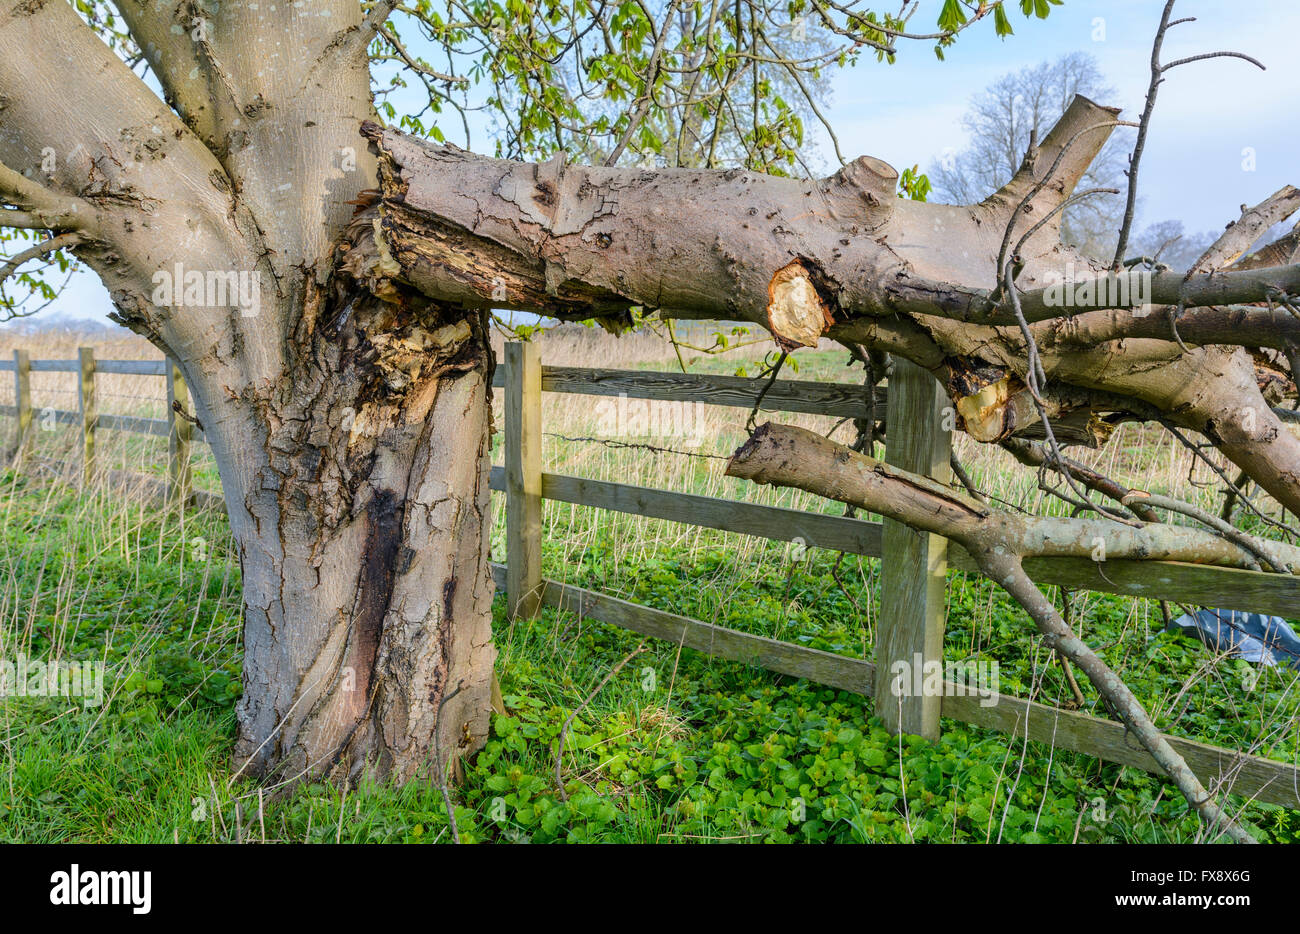 damaged-tree-with-branch-broken-off-and-